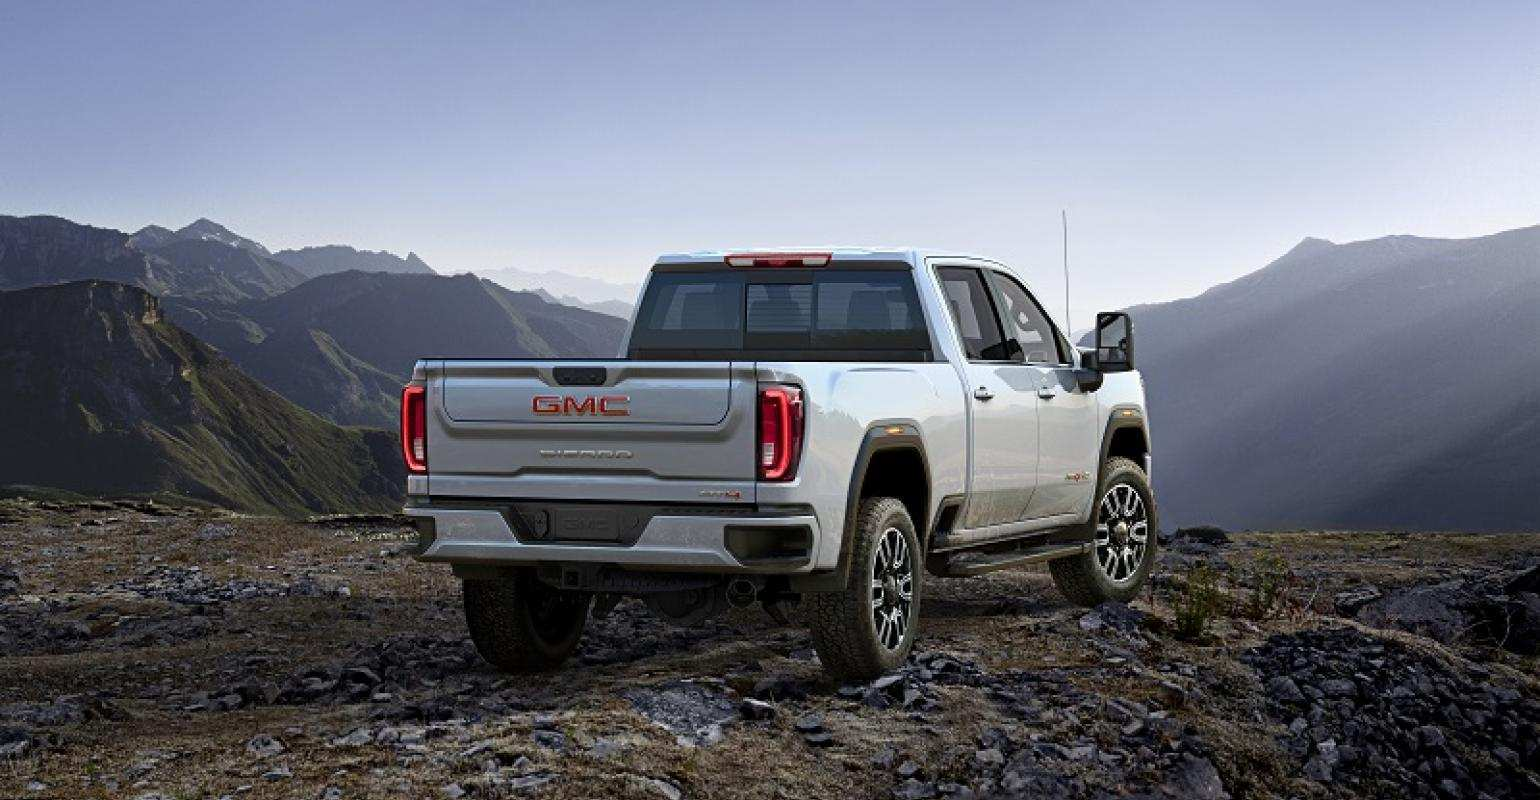 37 All New 2020 Gmc Hd Specs by 2020 Gmc Hd